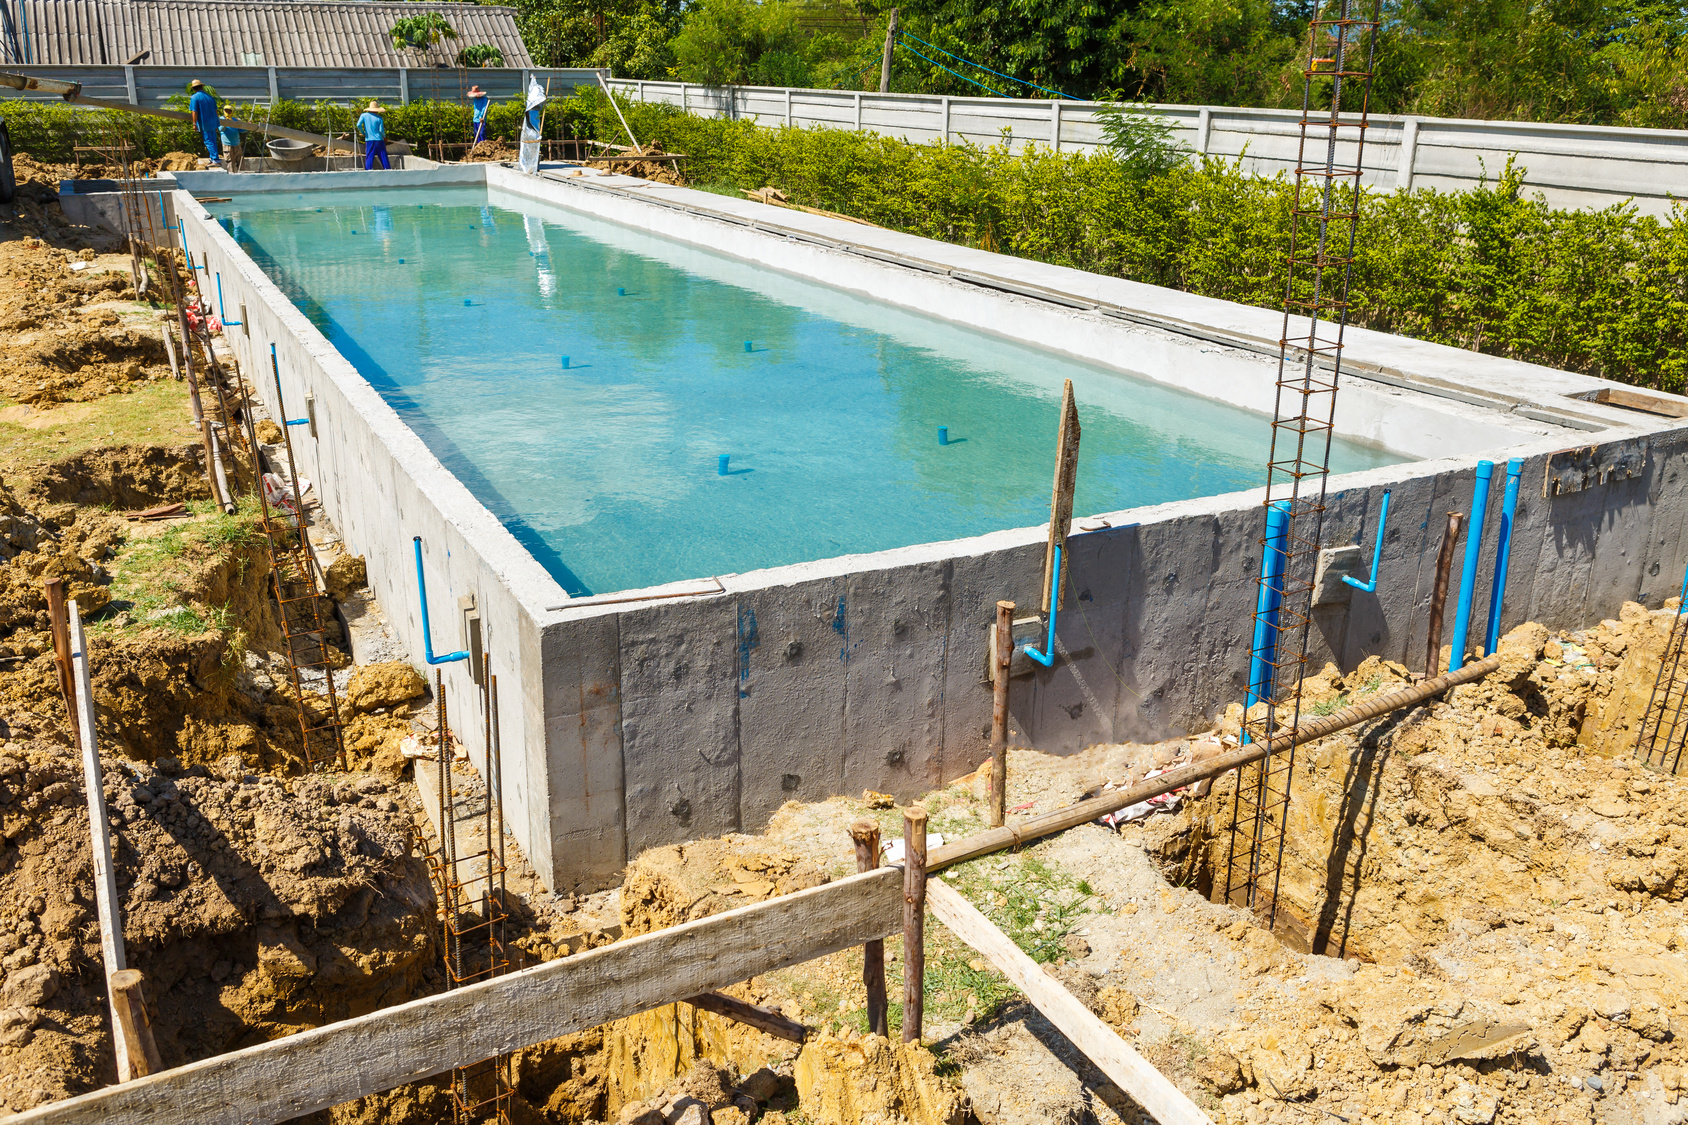 Construire une piscine b ton traditionnelle en kit for Piscine en solde